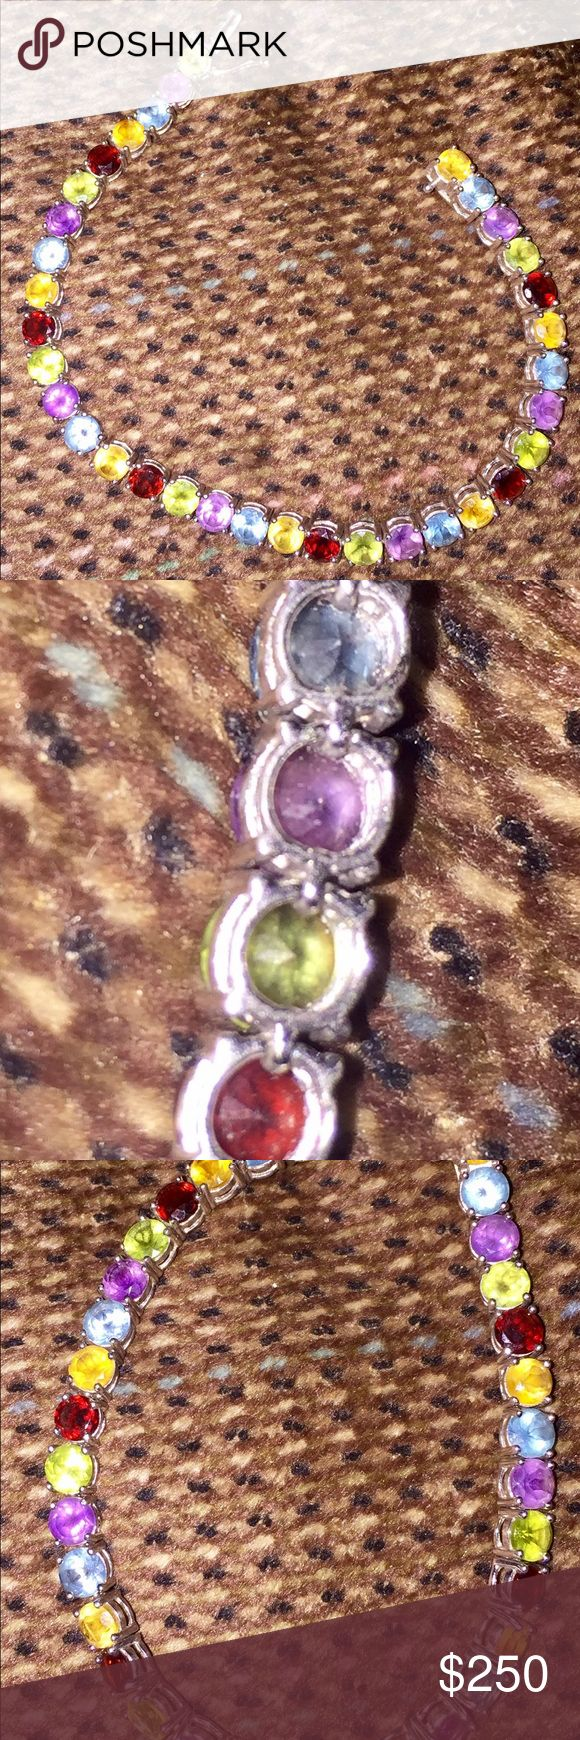 Sterling Silver and Gemstones Tennis Bracelet Sterling Silver and Multi Colored Gemstones Tennis Bracelet. New .925 Stamped Sterling Silver Multi colored gemstones Safety latch/clasp Excellent/new condition  Purchased Macy's 2016  Original price $395 Price Firm Jewelry Bracelets